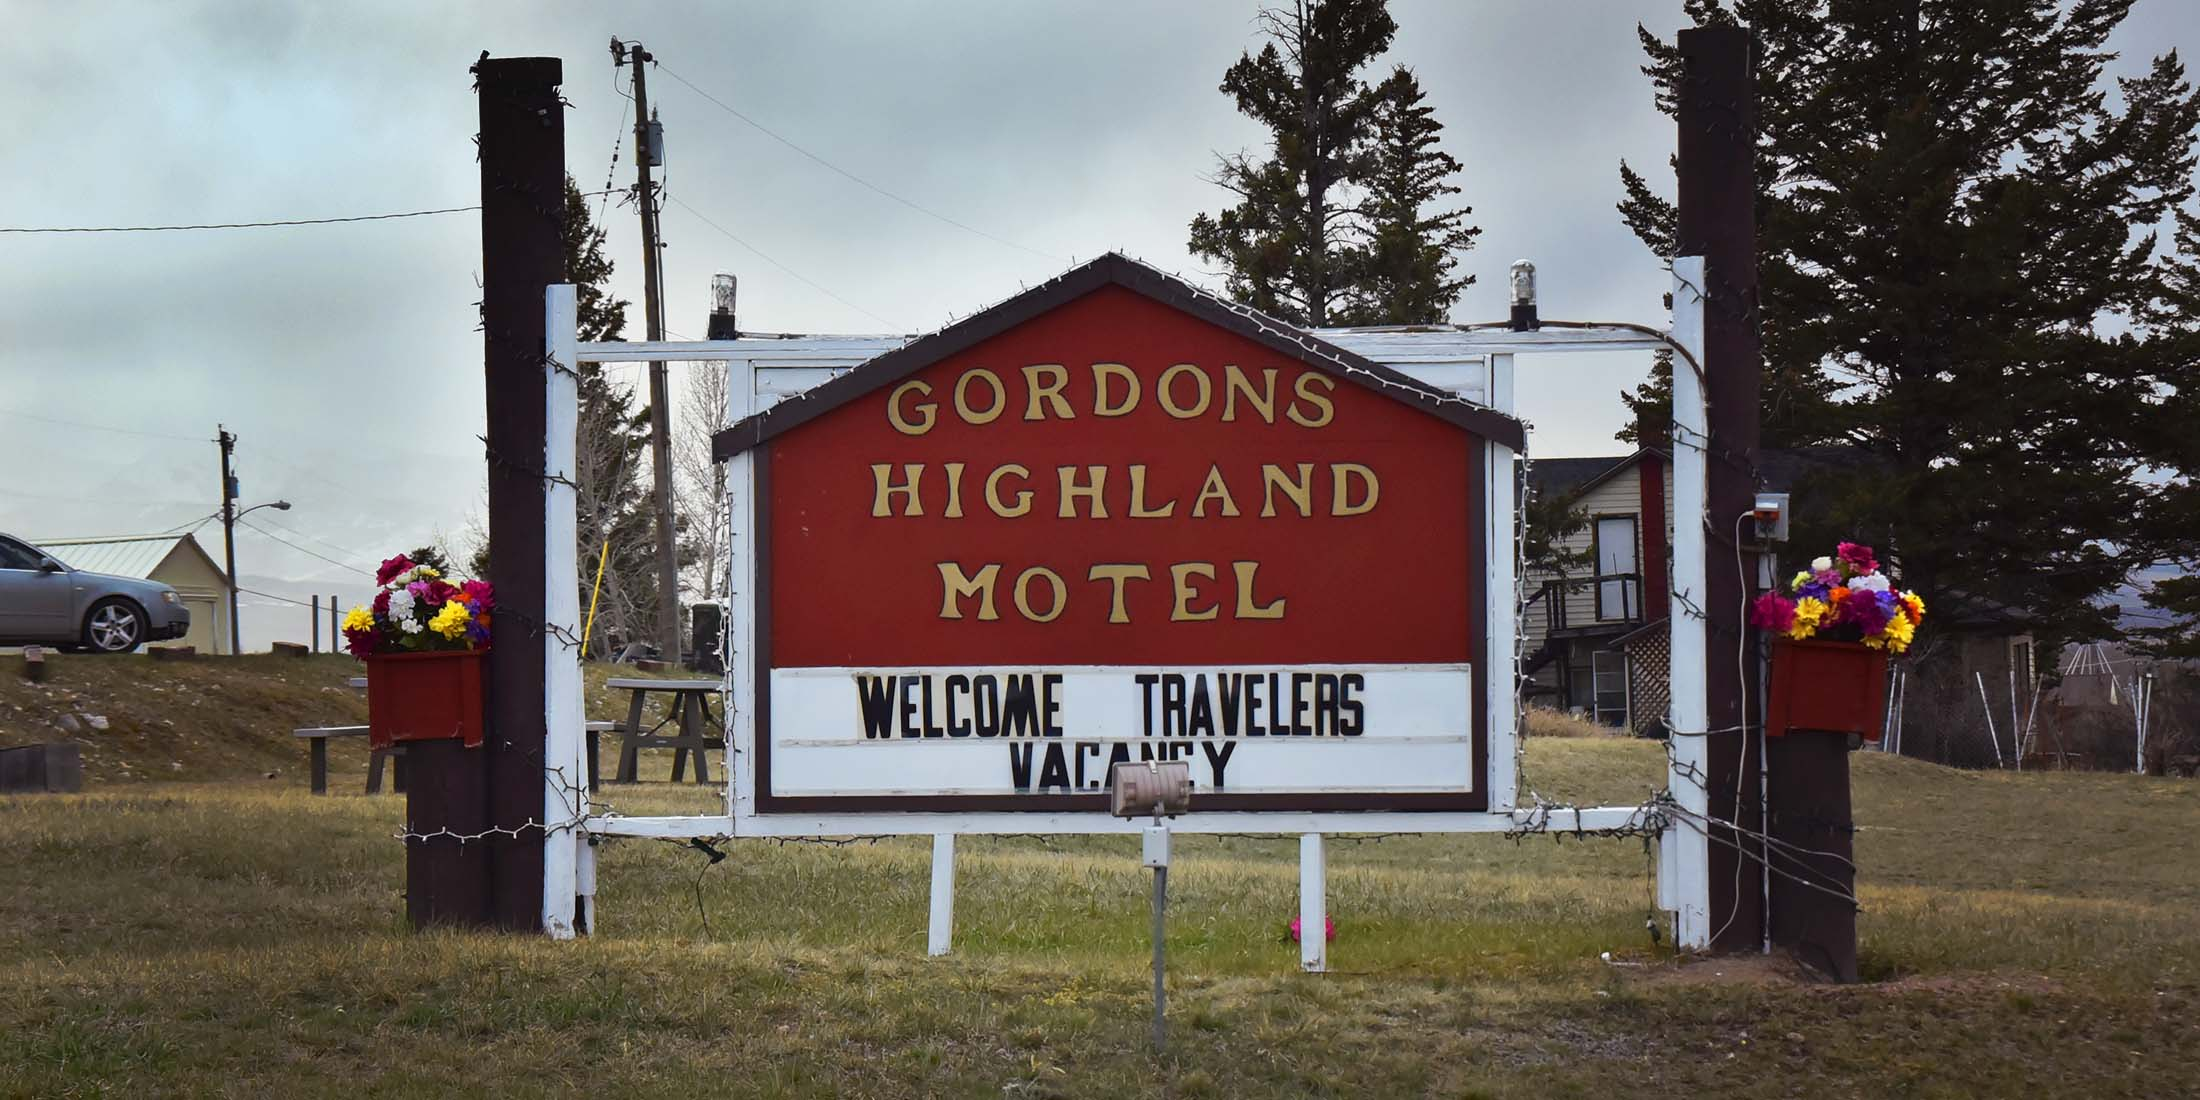 Gordon's Highland Motel is located along Highway 89 in White Sulphur Springs, MT, Cascade County.